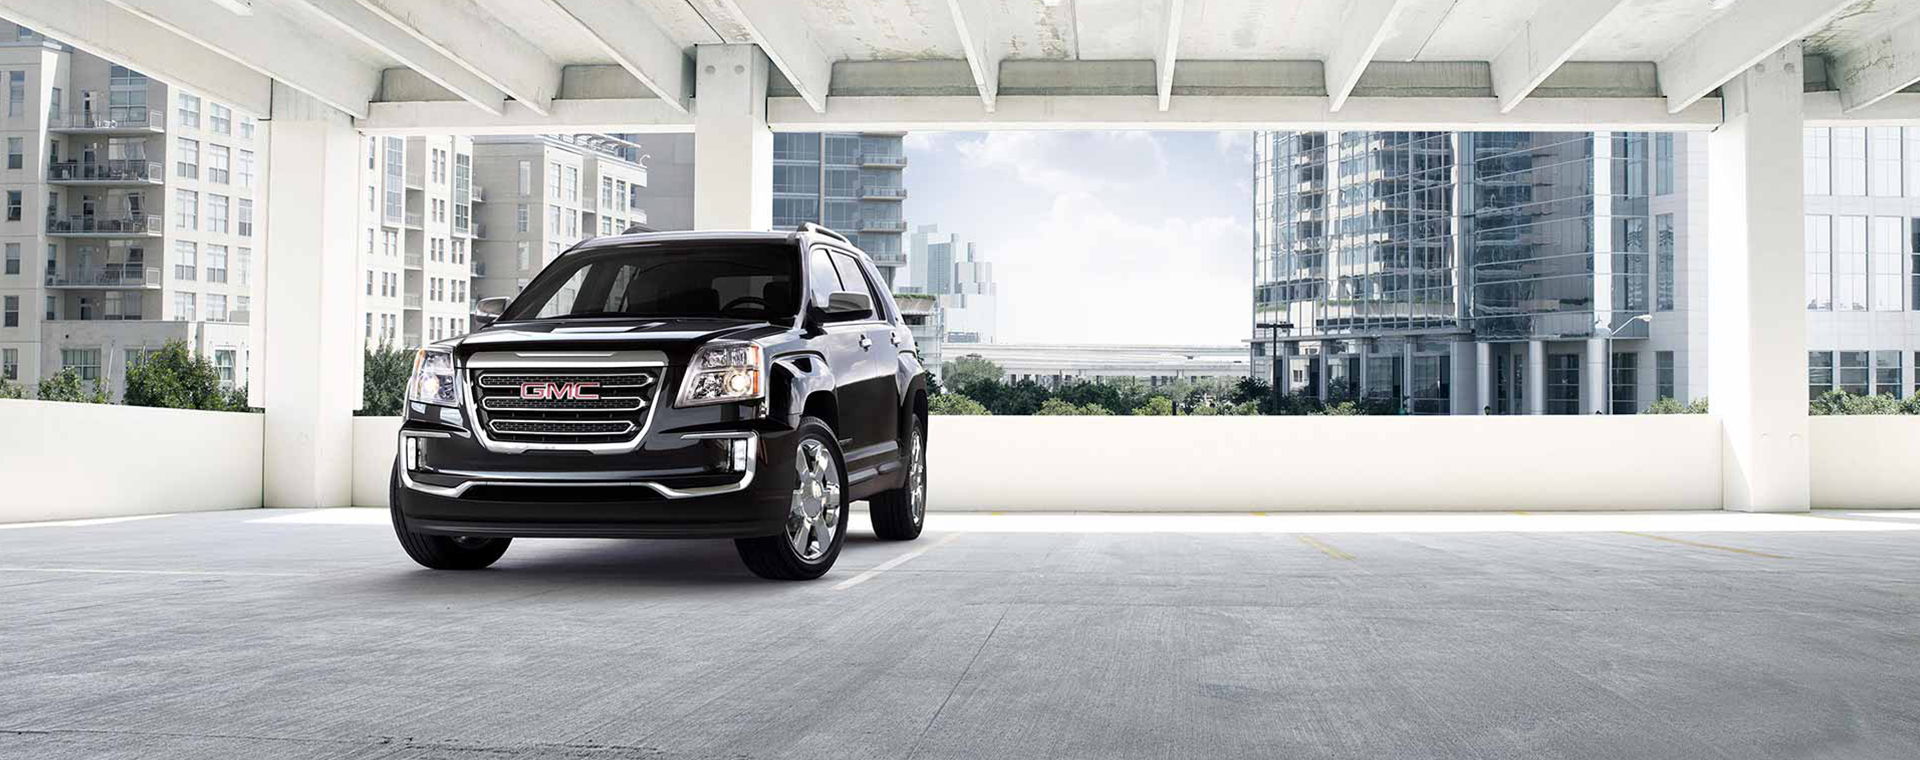 New Terrain inventory at Quirk Buick GMC